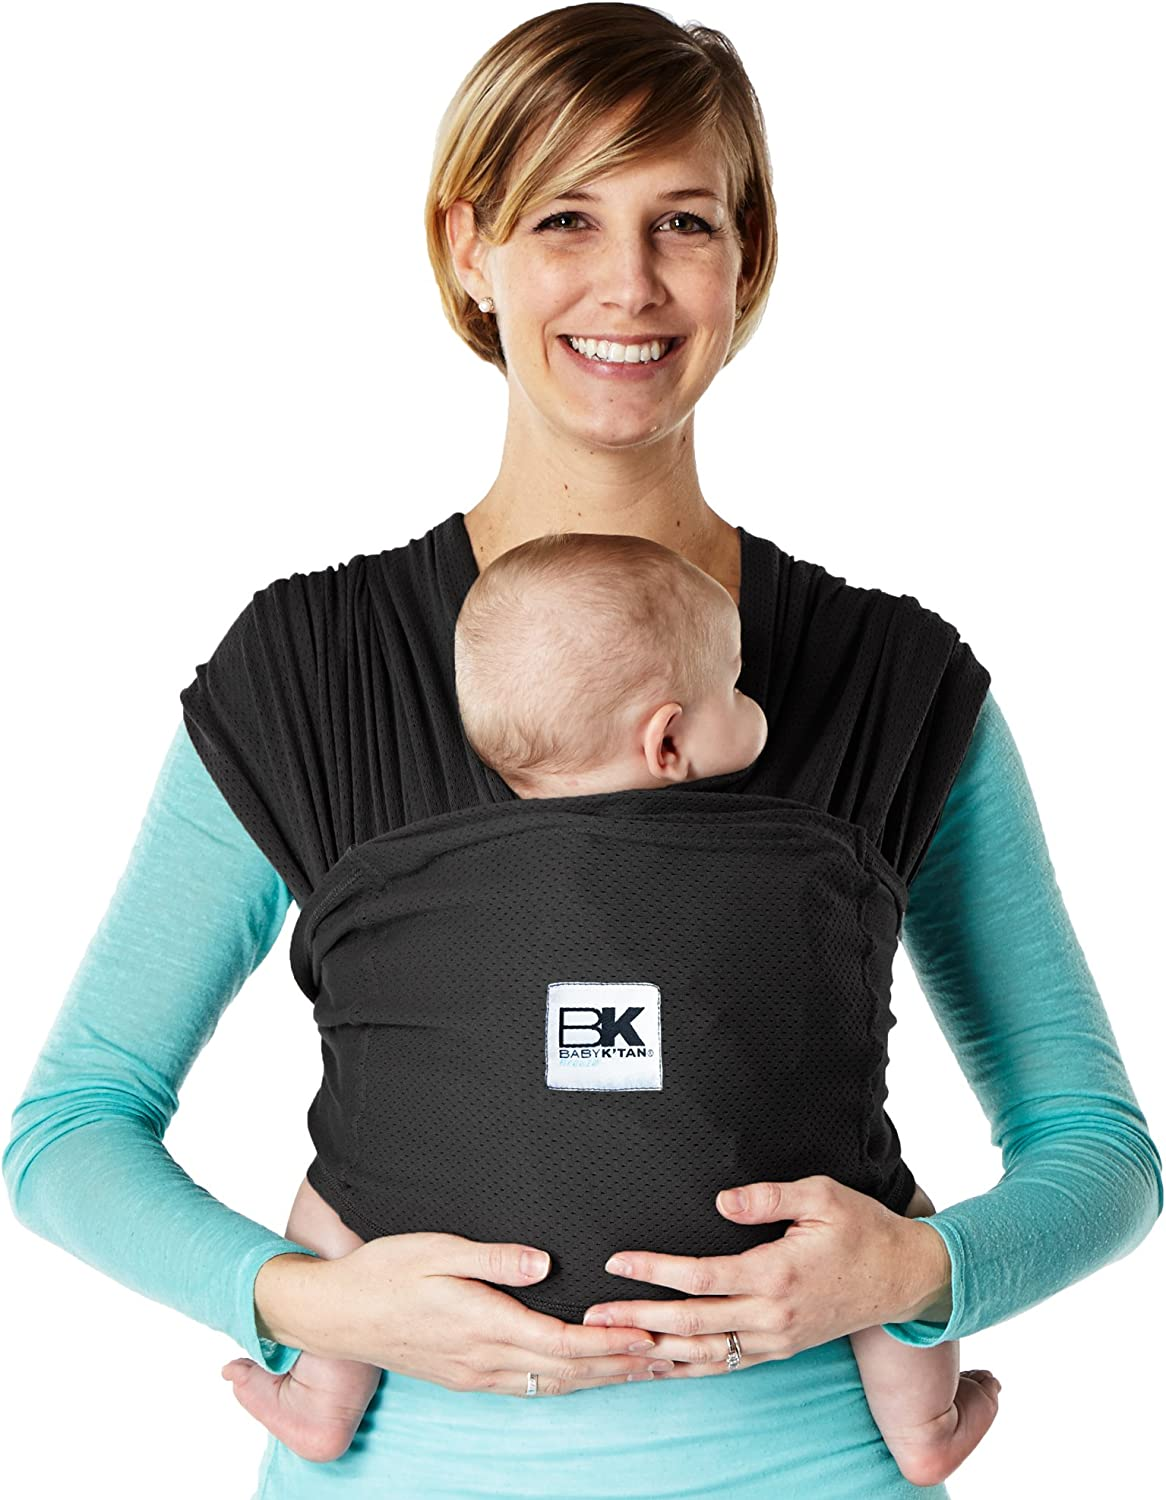 Small Baby KTan Baby Carrier Black Breeze